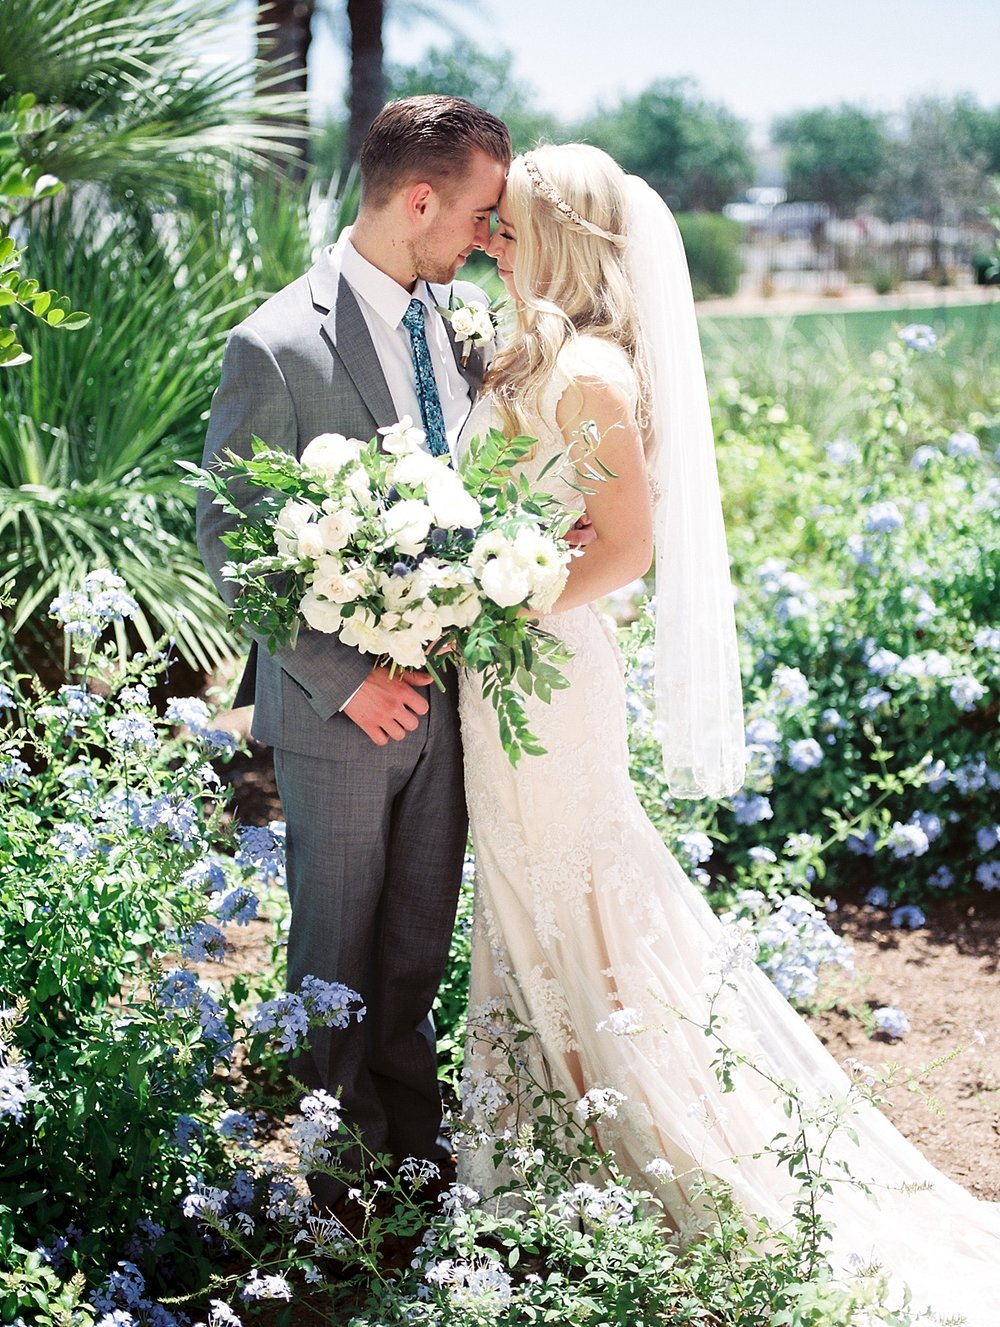 Sarah Jane Photography Film Hybrid Scottsdale Phoenix Arizona Destination Wedding Photographer web_0004.jpg